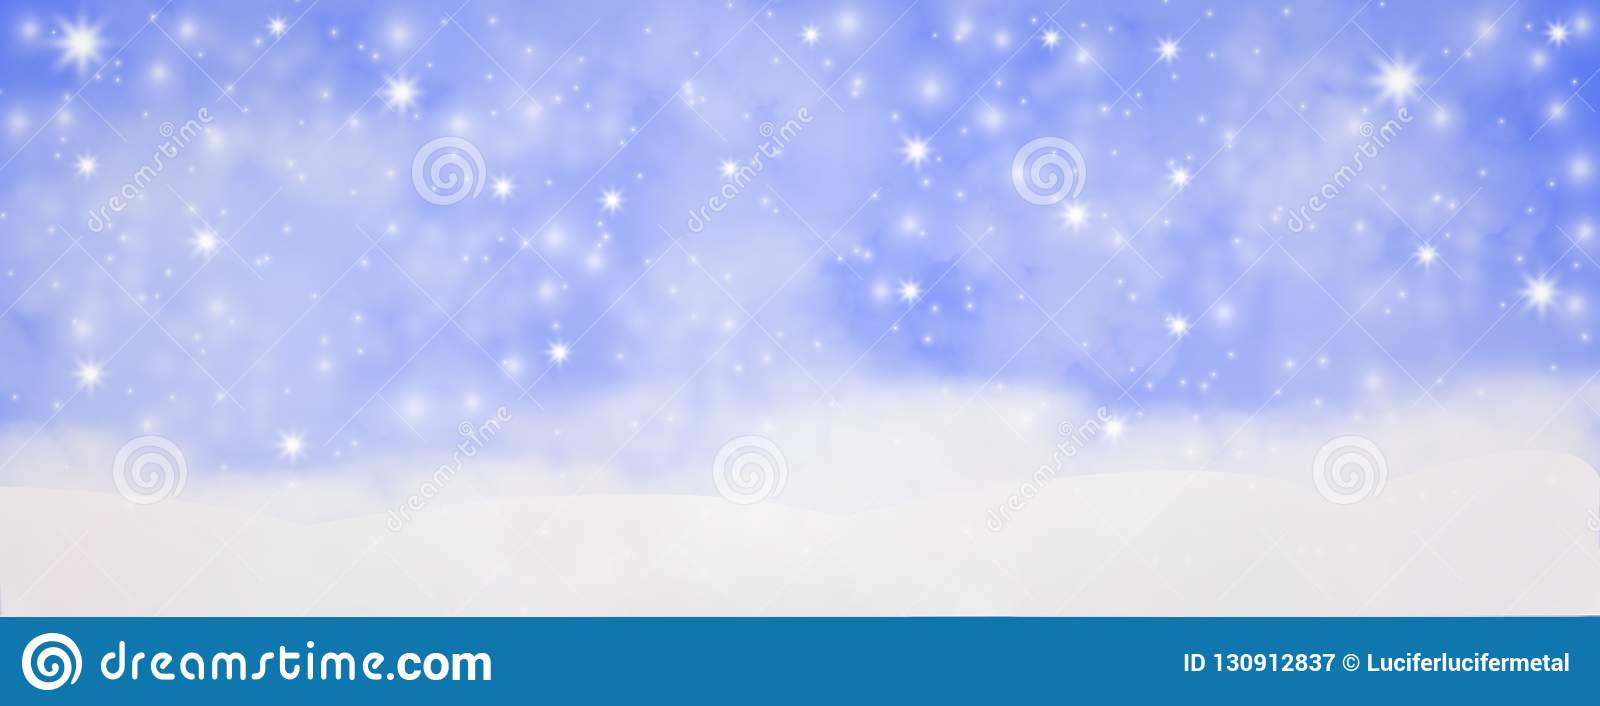 Winter outdoor with falling snowflakes, Panoramic web banner horizontal, with snow background, bokeh And glittering, Concept of c